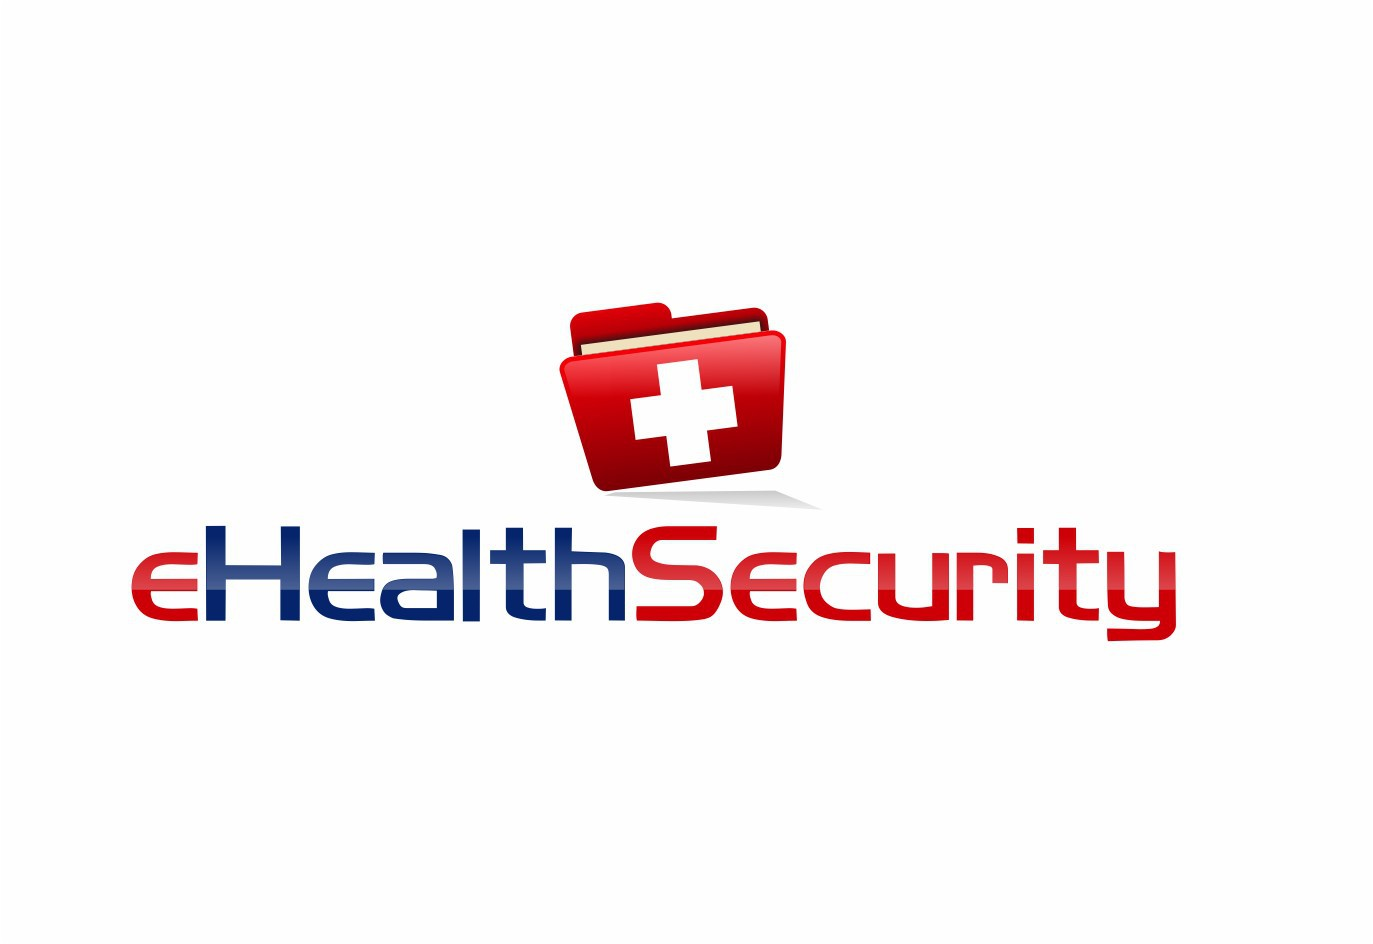 eHealthSecurity needs a new logo